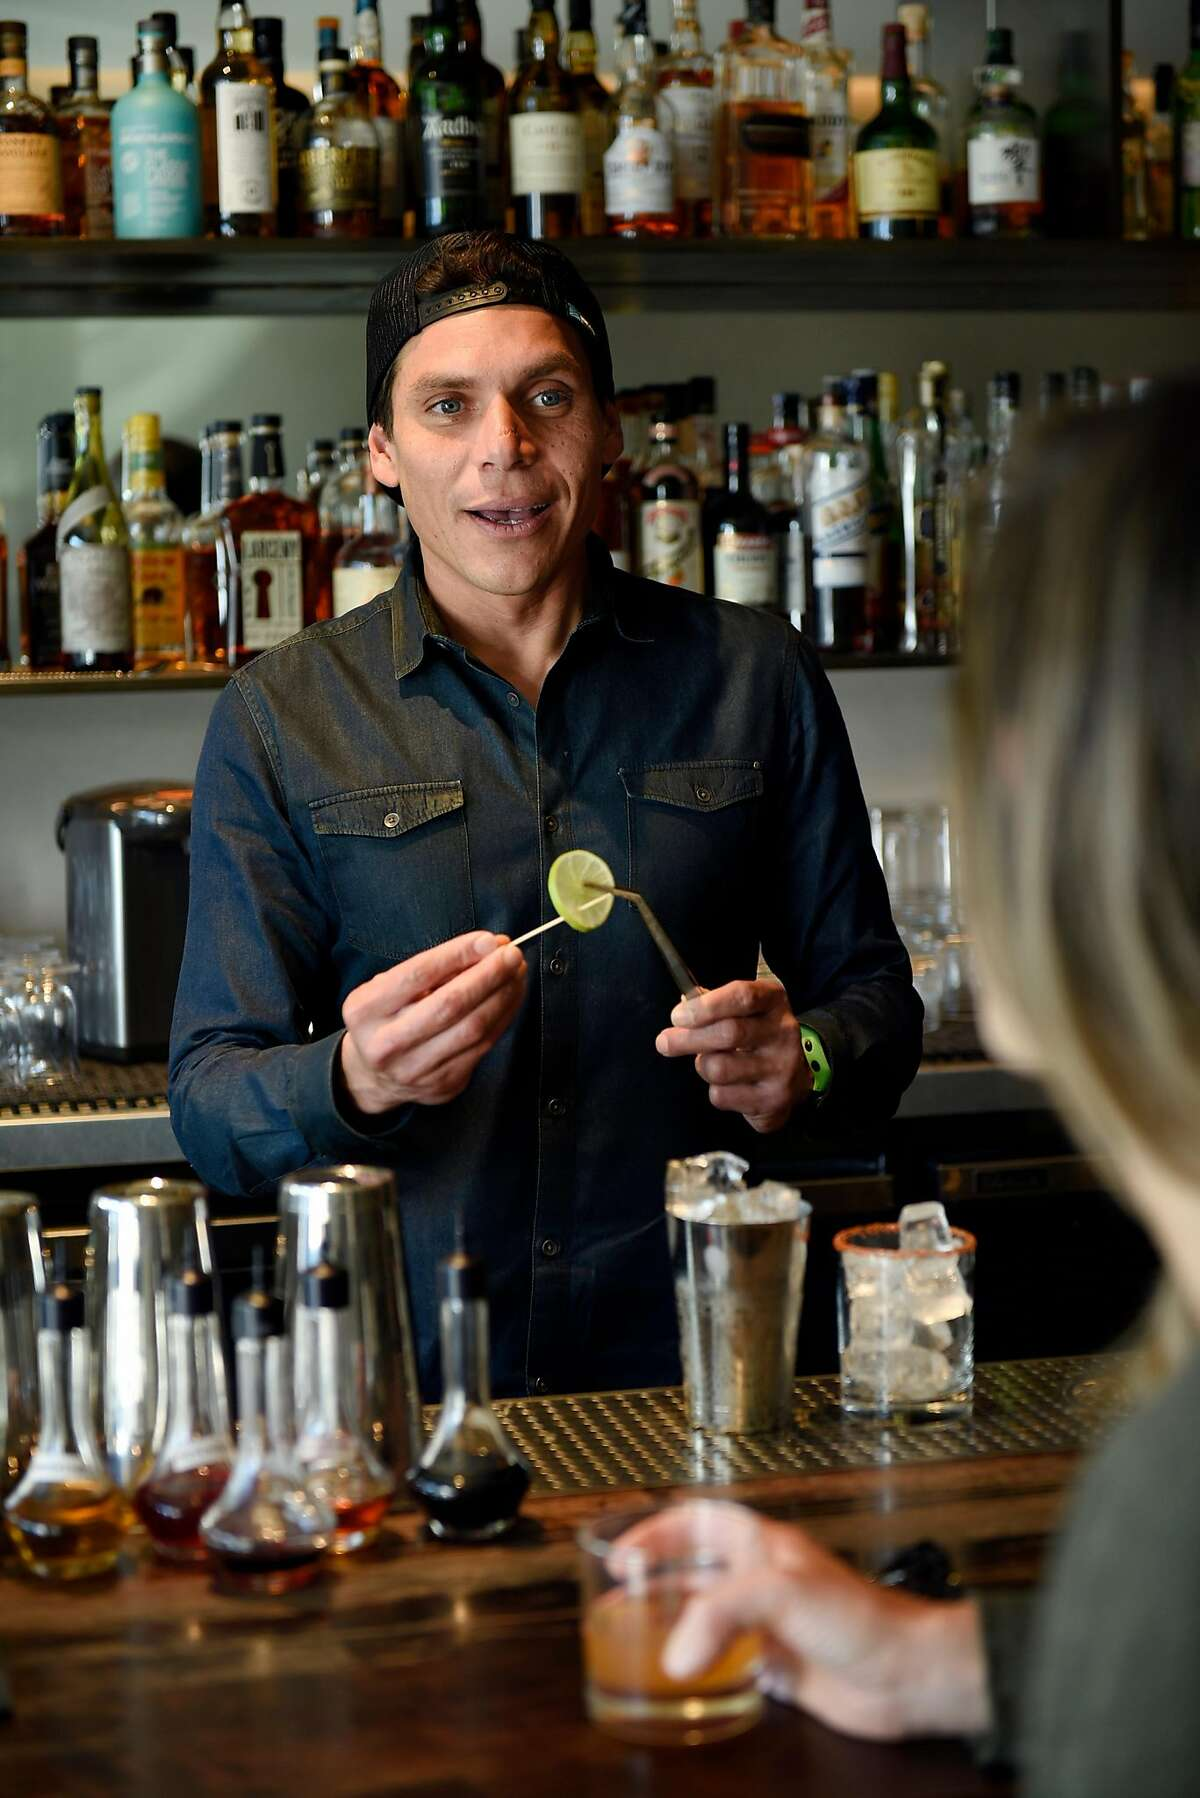 Head bartender Carlos Yturria talks with a customer while making a drink at the White Cap cocktail bar in San Francisco, Calif., on Saturday January 6, 2018.